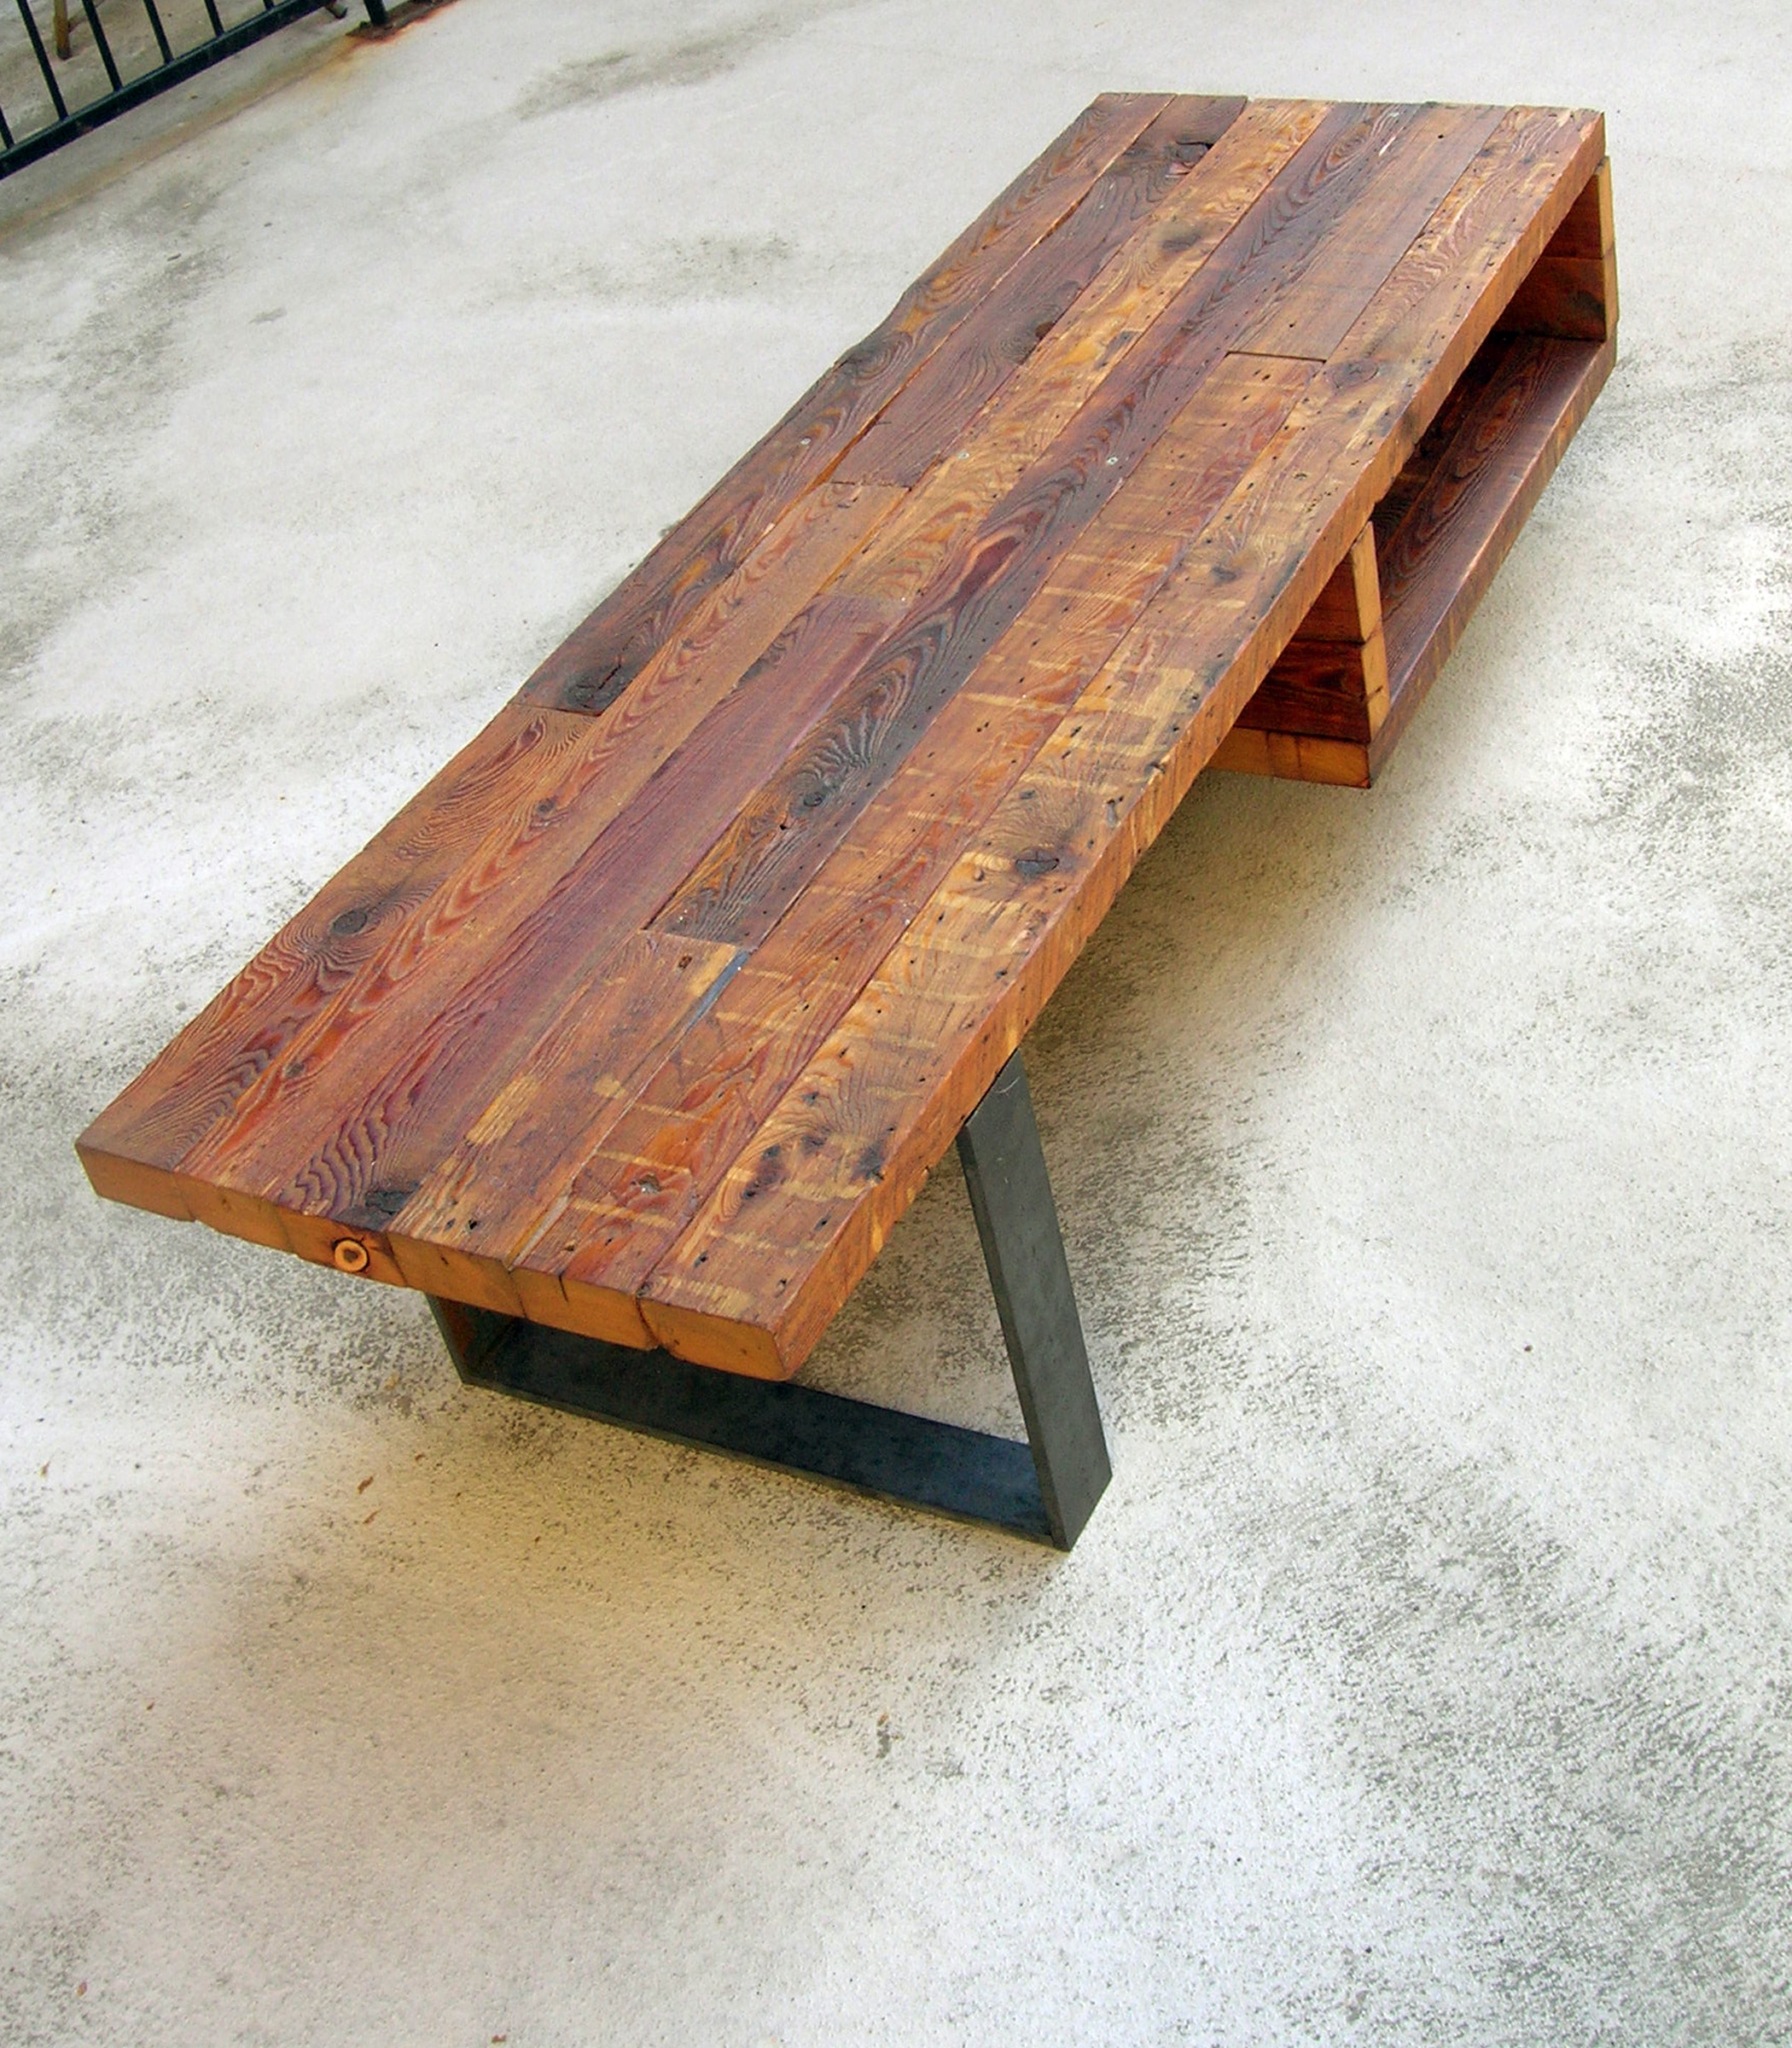 Mild Steel Coffee Table: Coffee Table 1 By Tyson Schrock At Coroflot.com